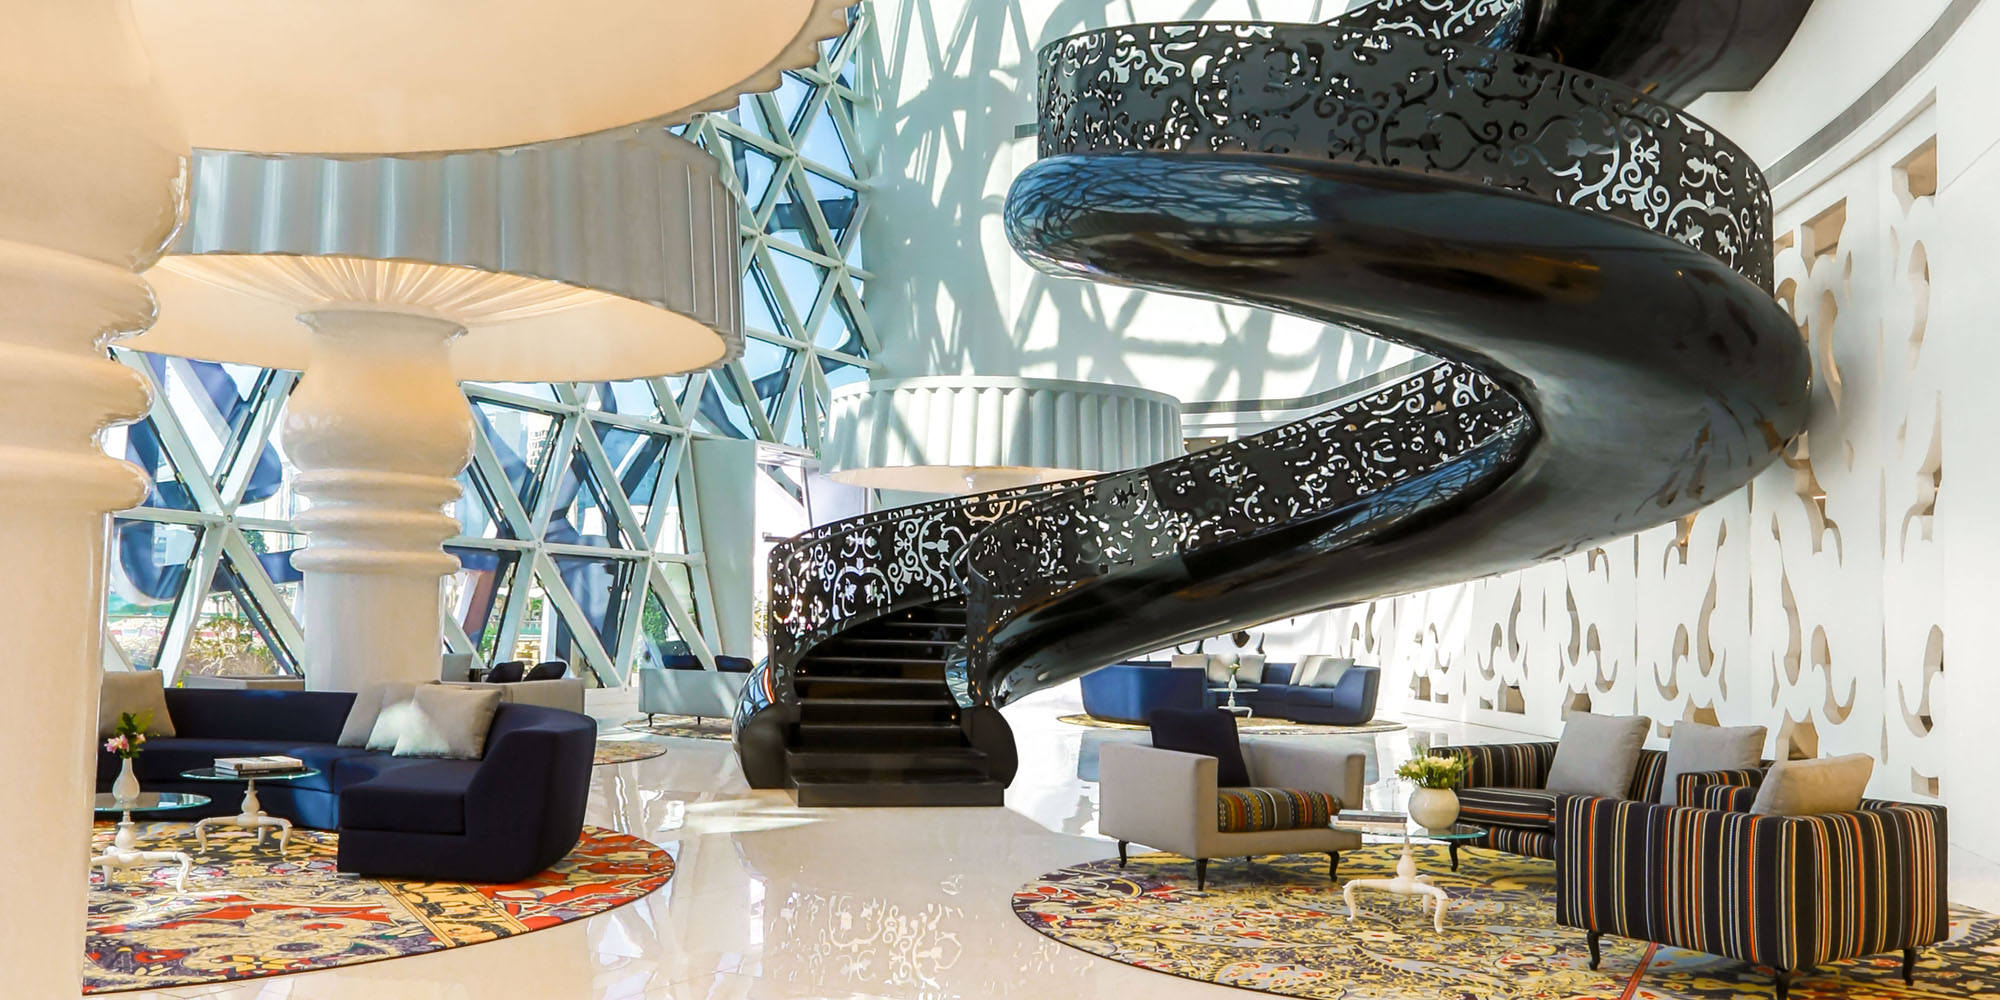 Mondrian Doha Qatar Space International Hotel Design